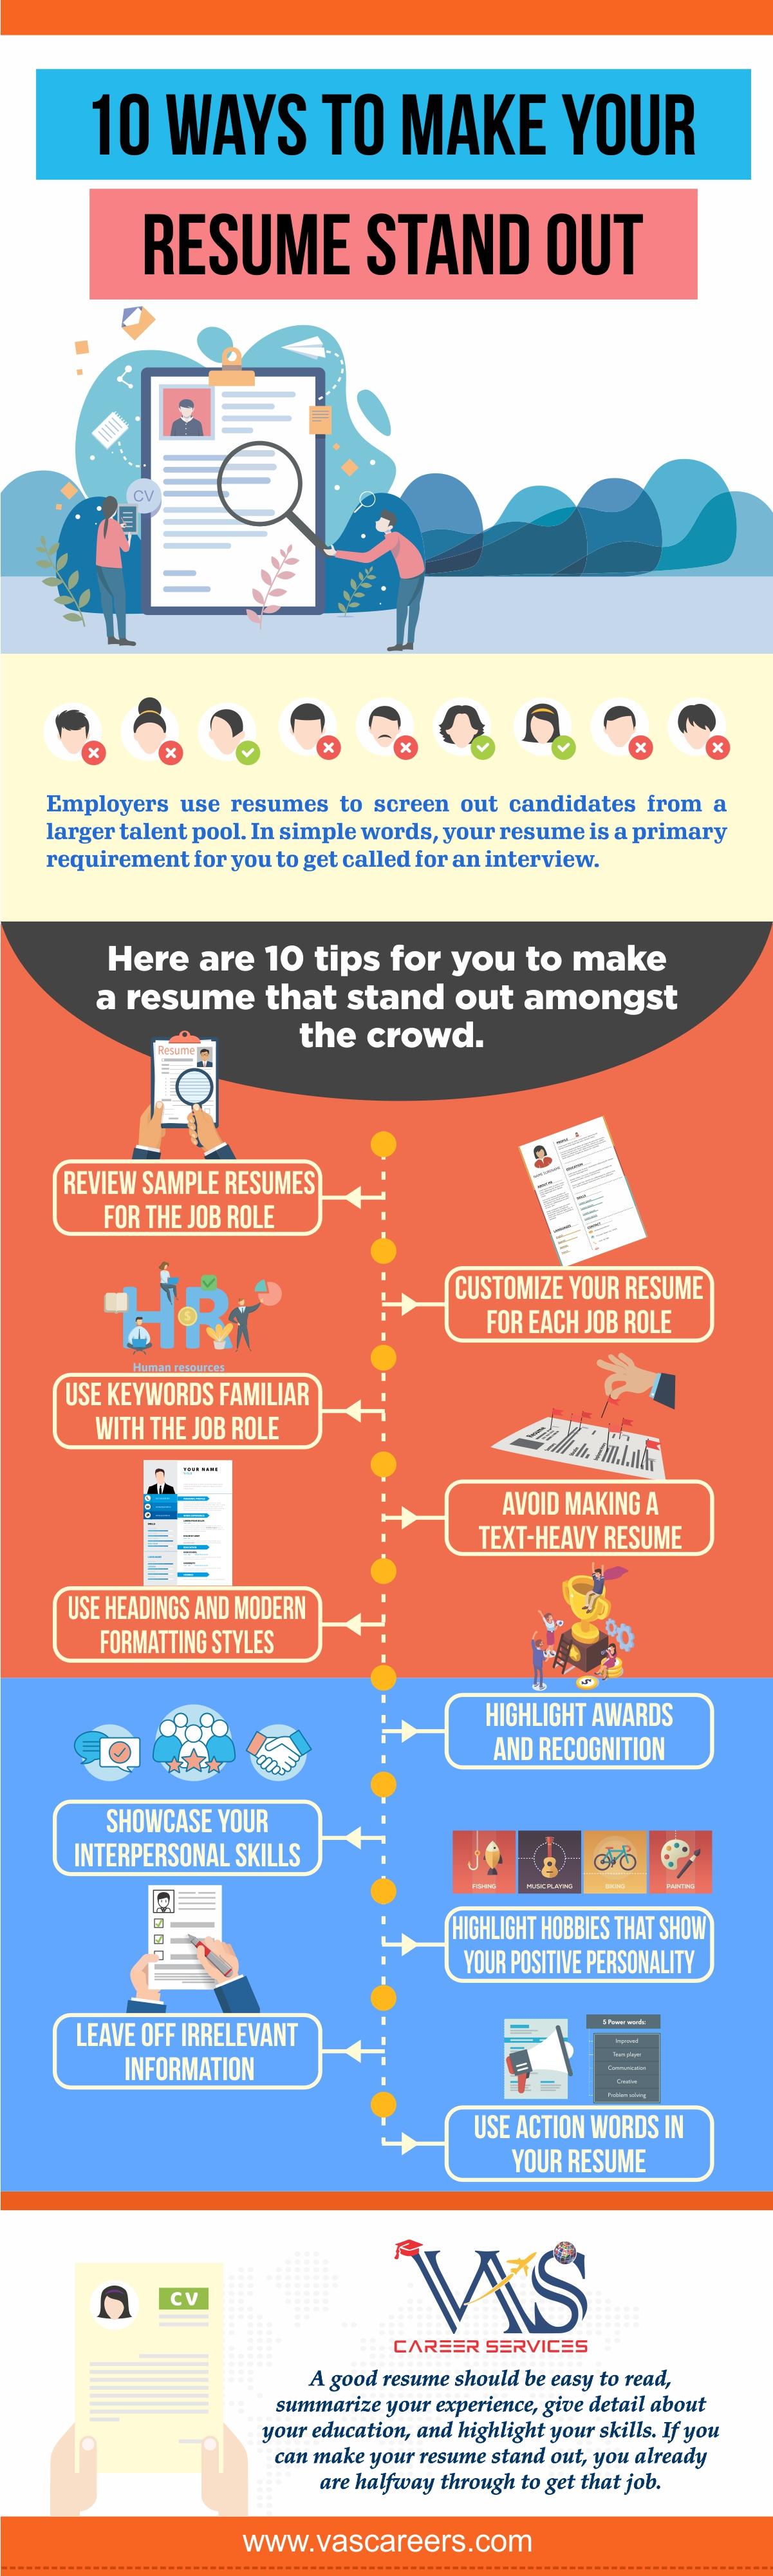 Make your resume stand-out